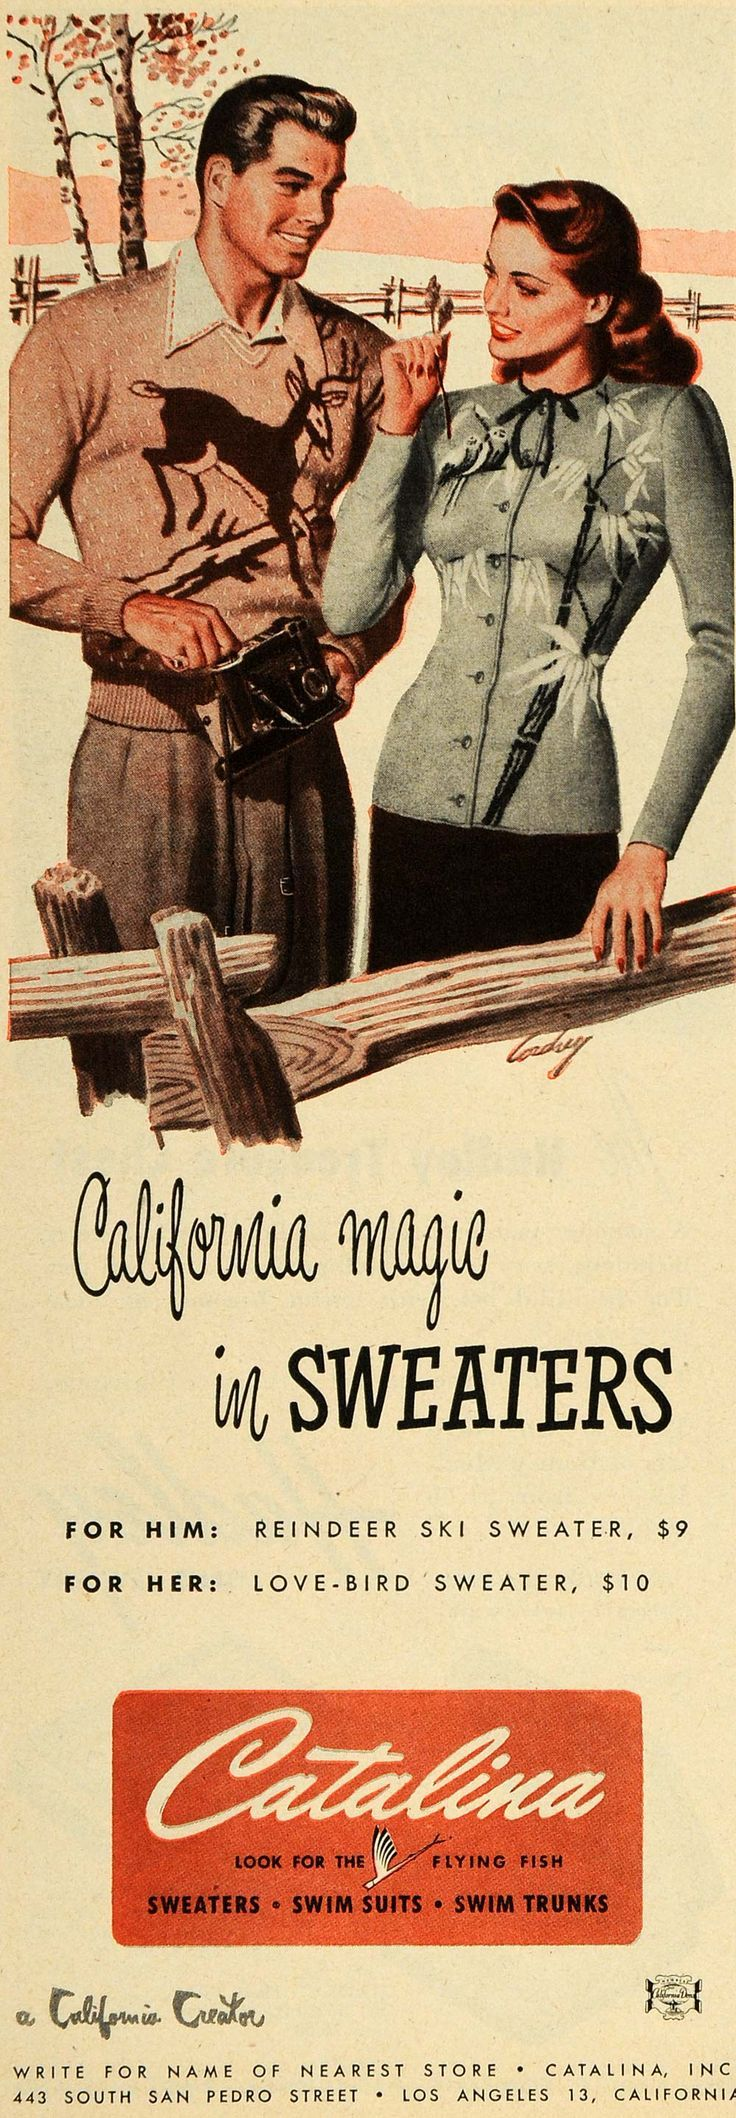 """Iconic"" sweaters from the 1940s! 